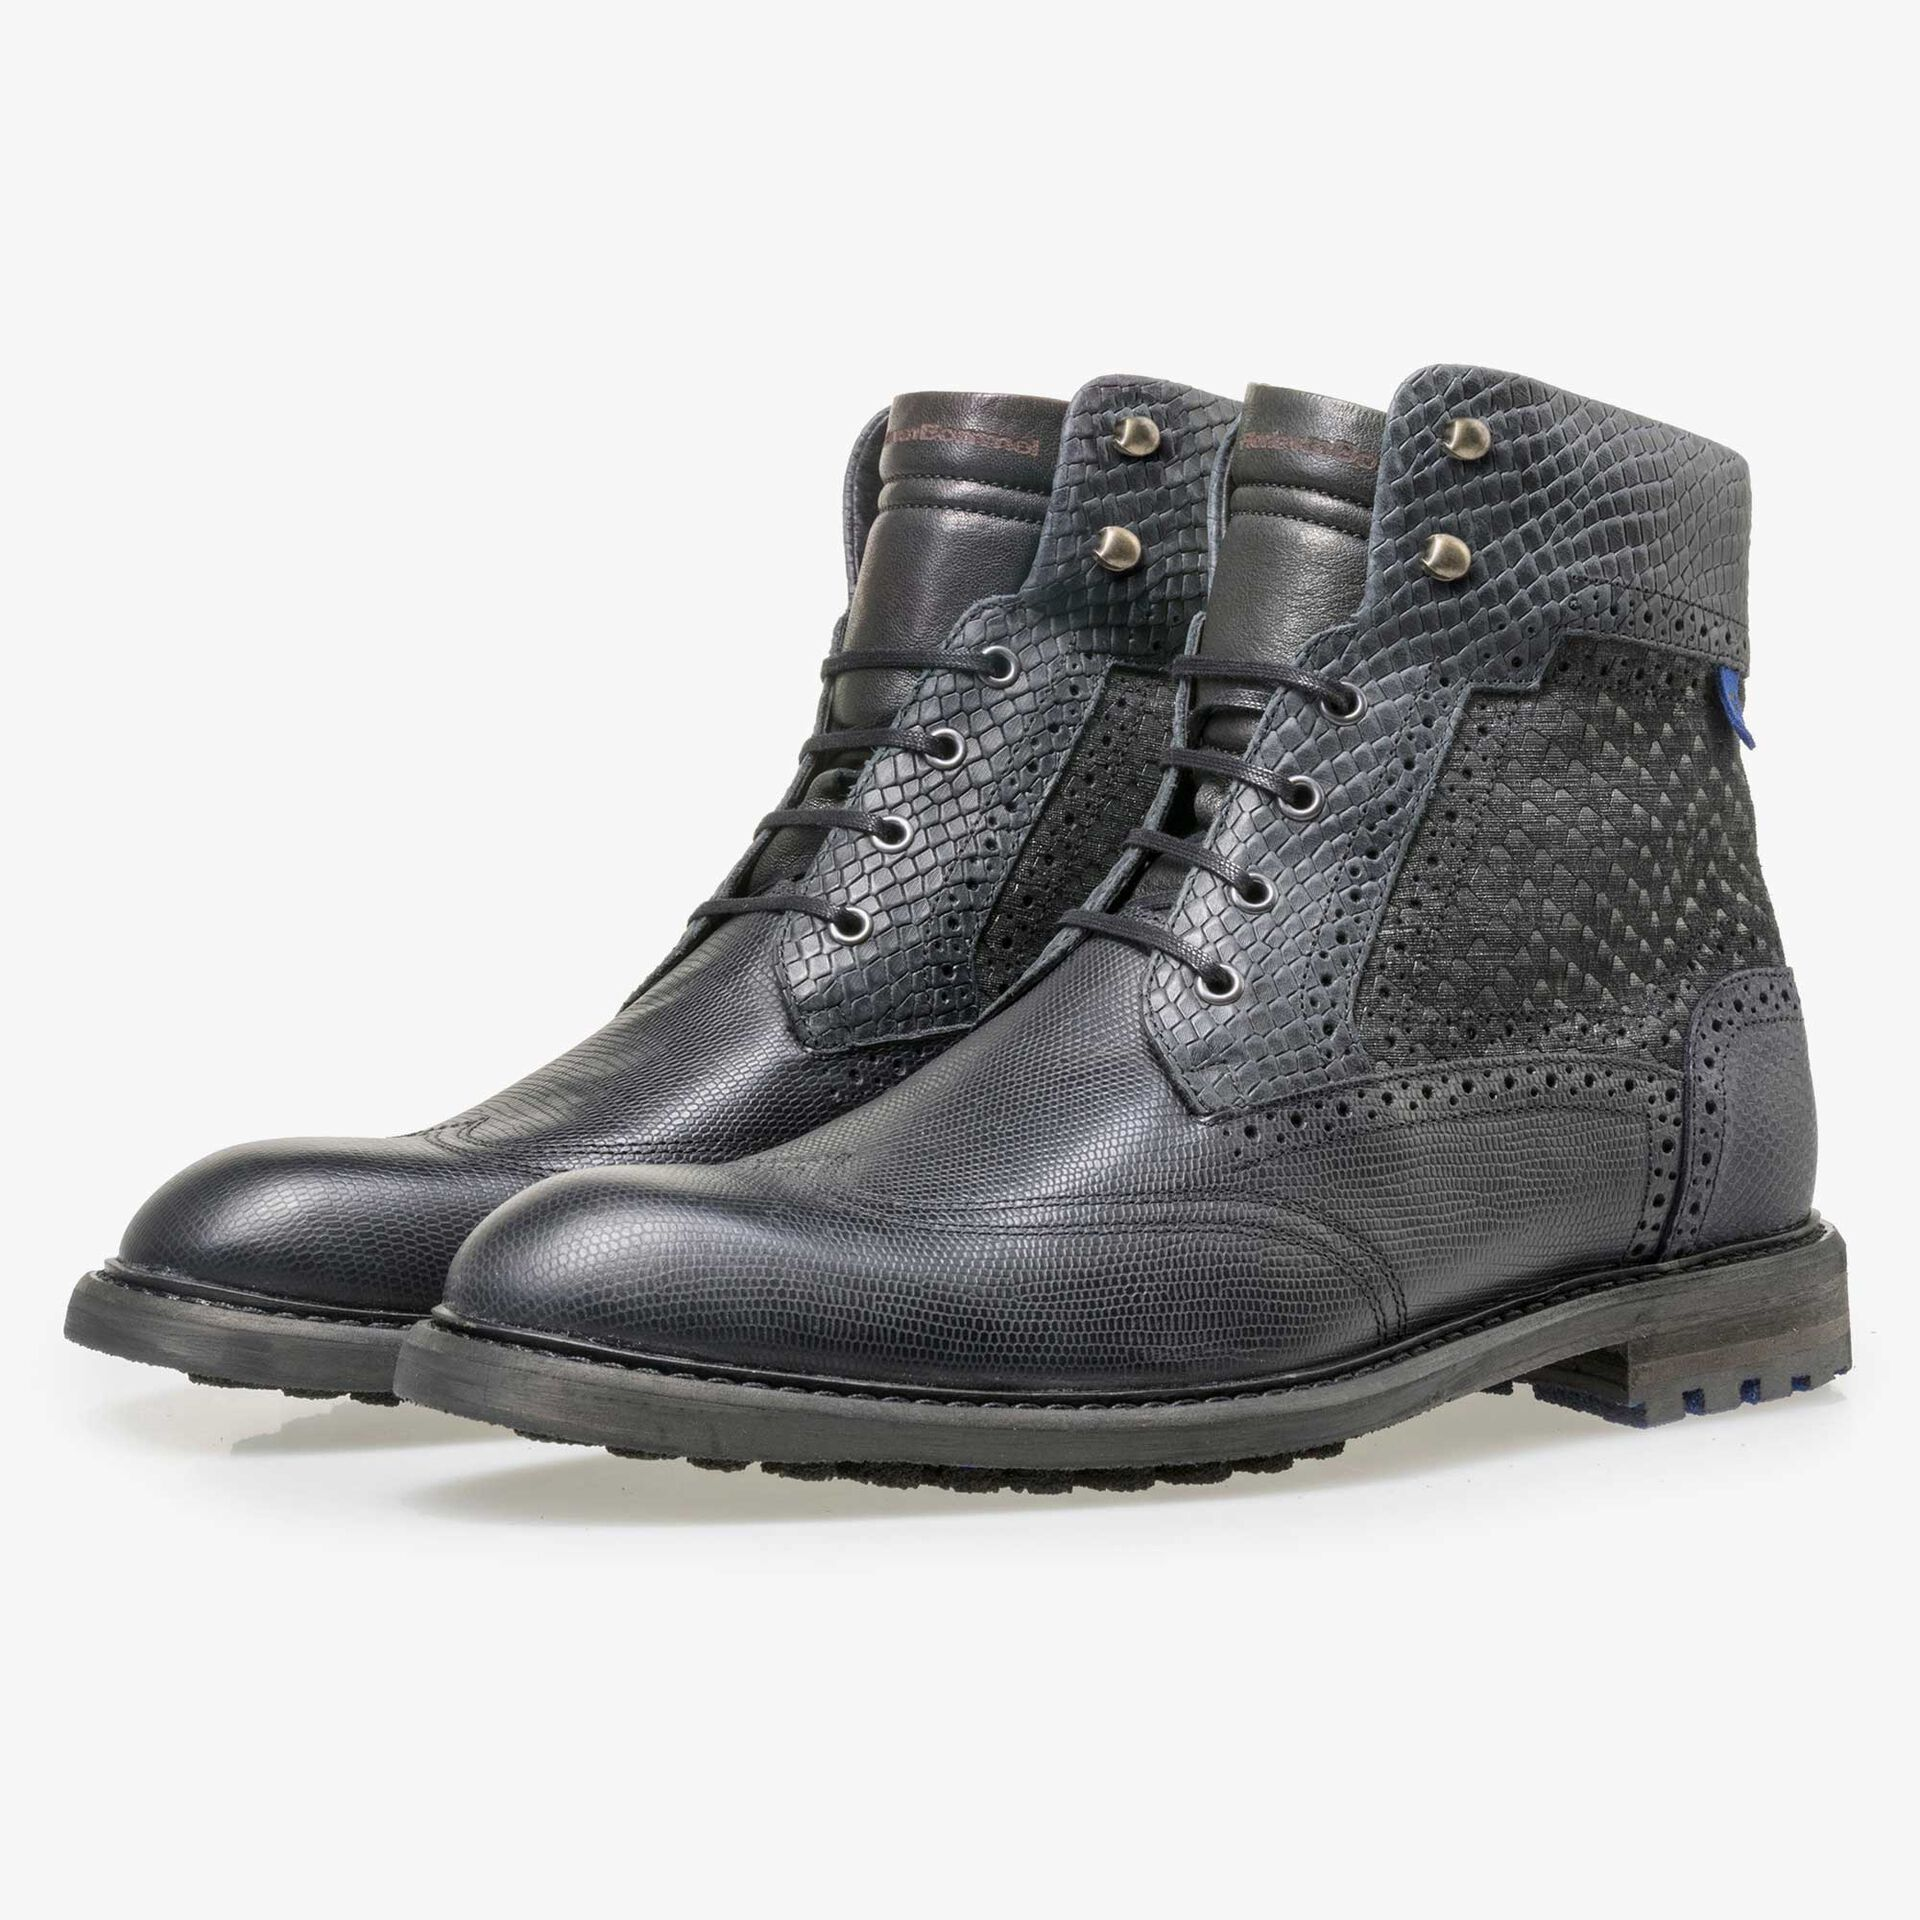 Floris van Bommel black high leather lace boot finished with a snake print